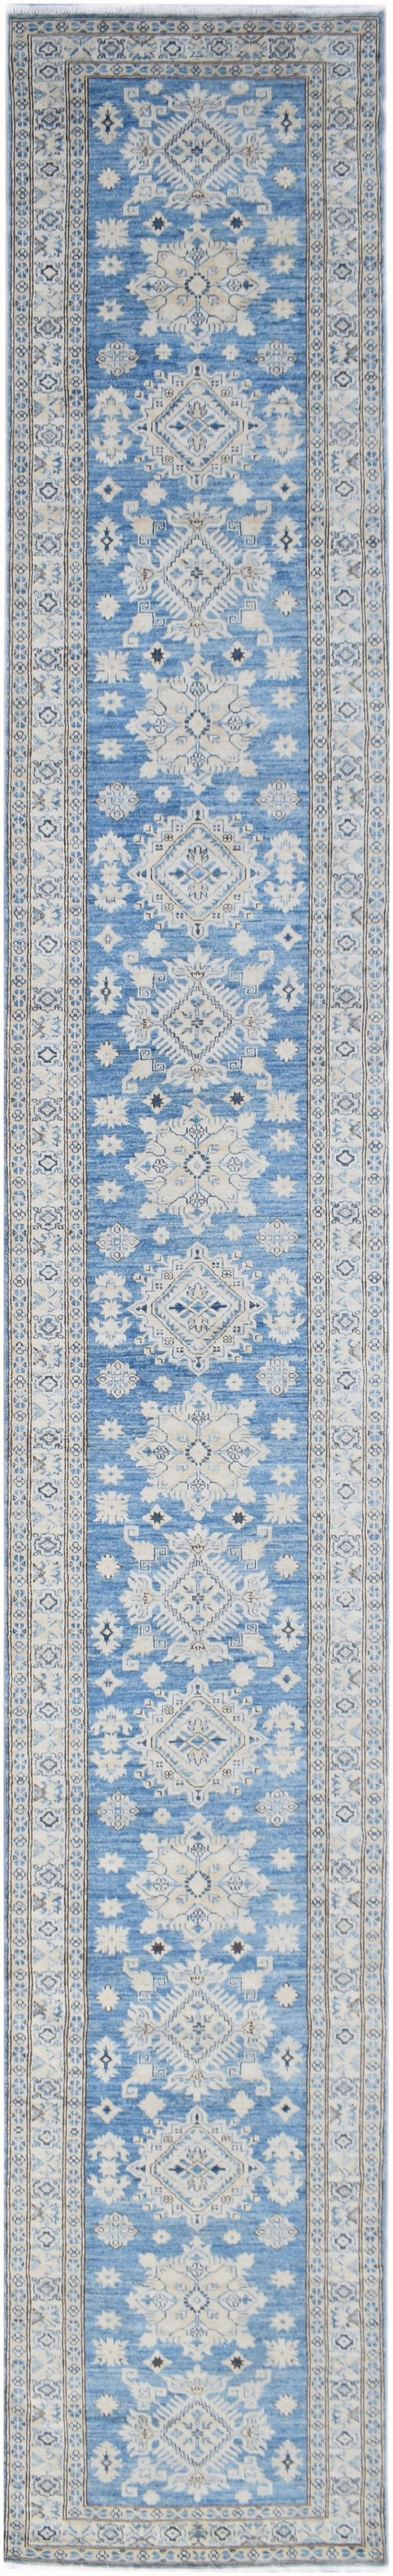 Handmade Sultan Collection Hallway Runner | 616 x 90 cm | 20'3